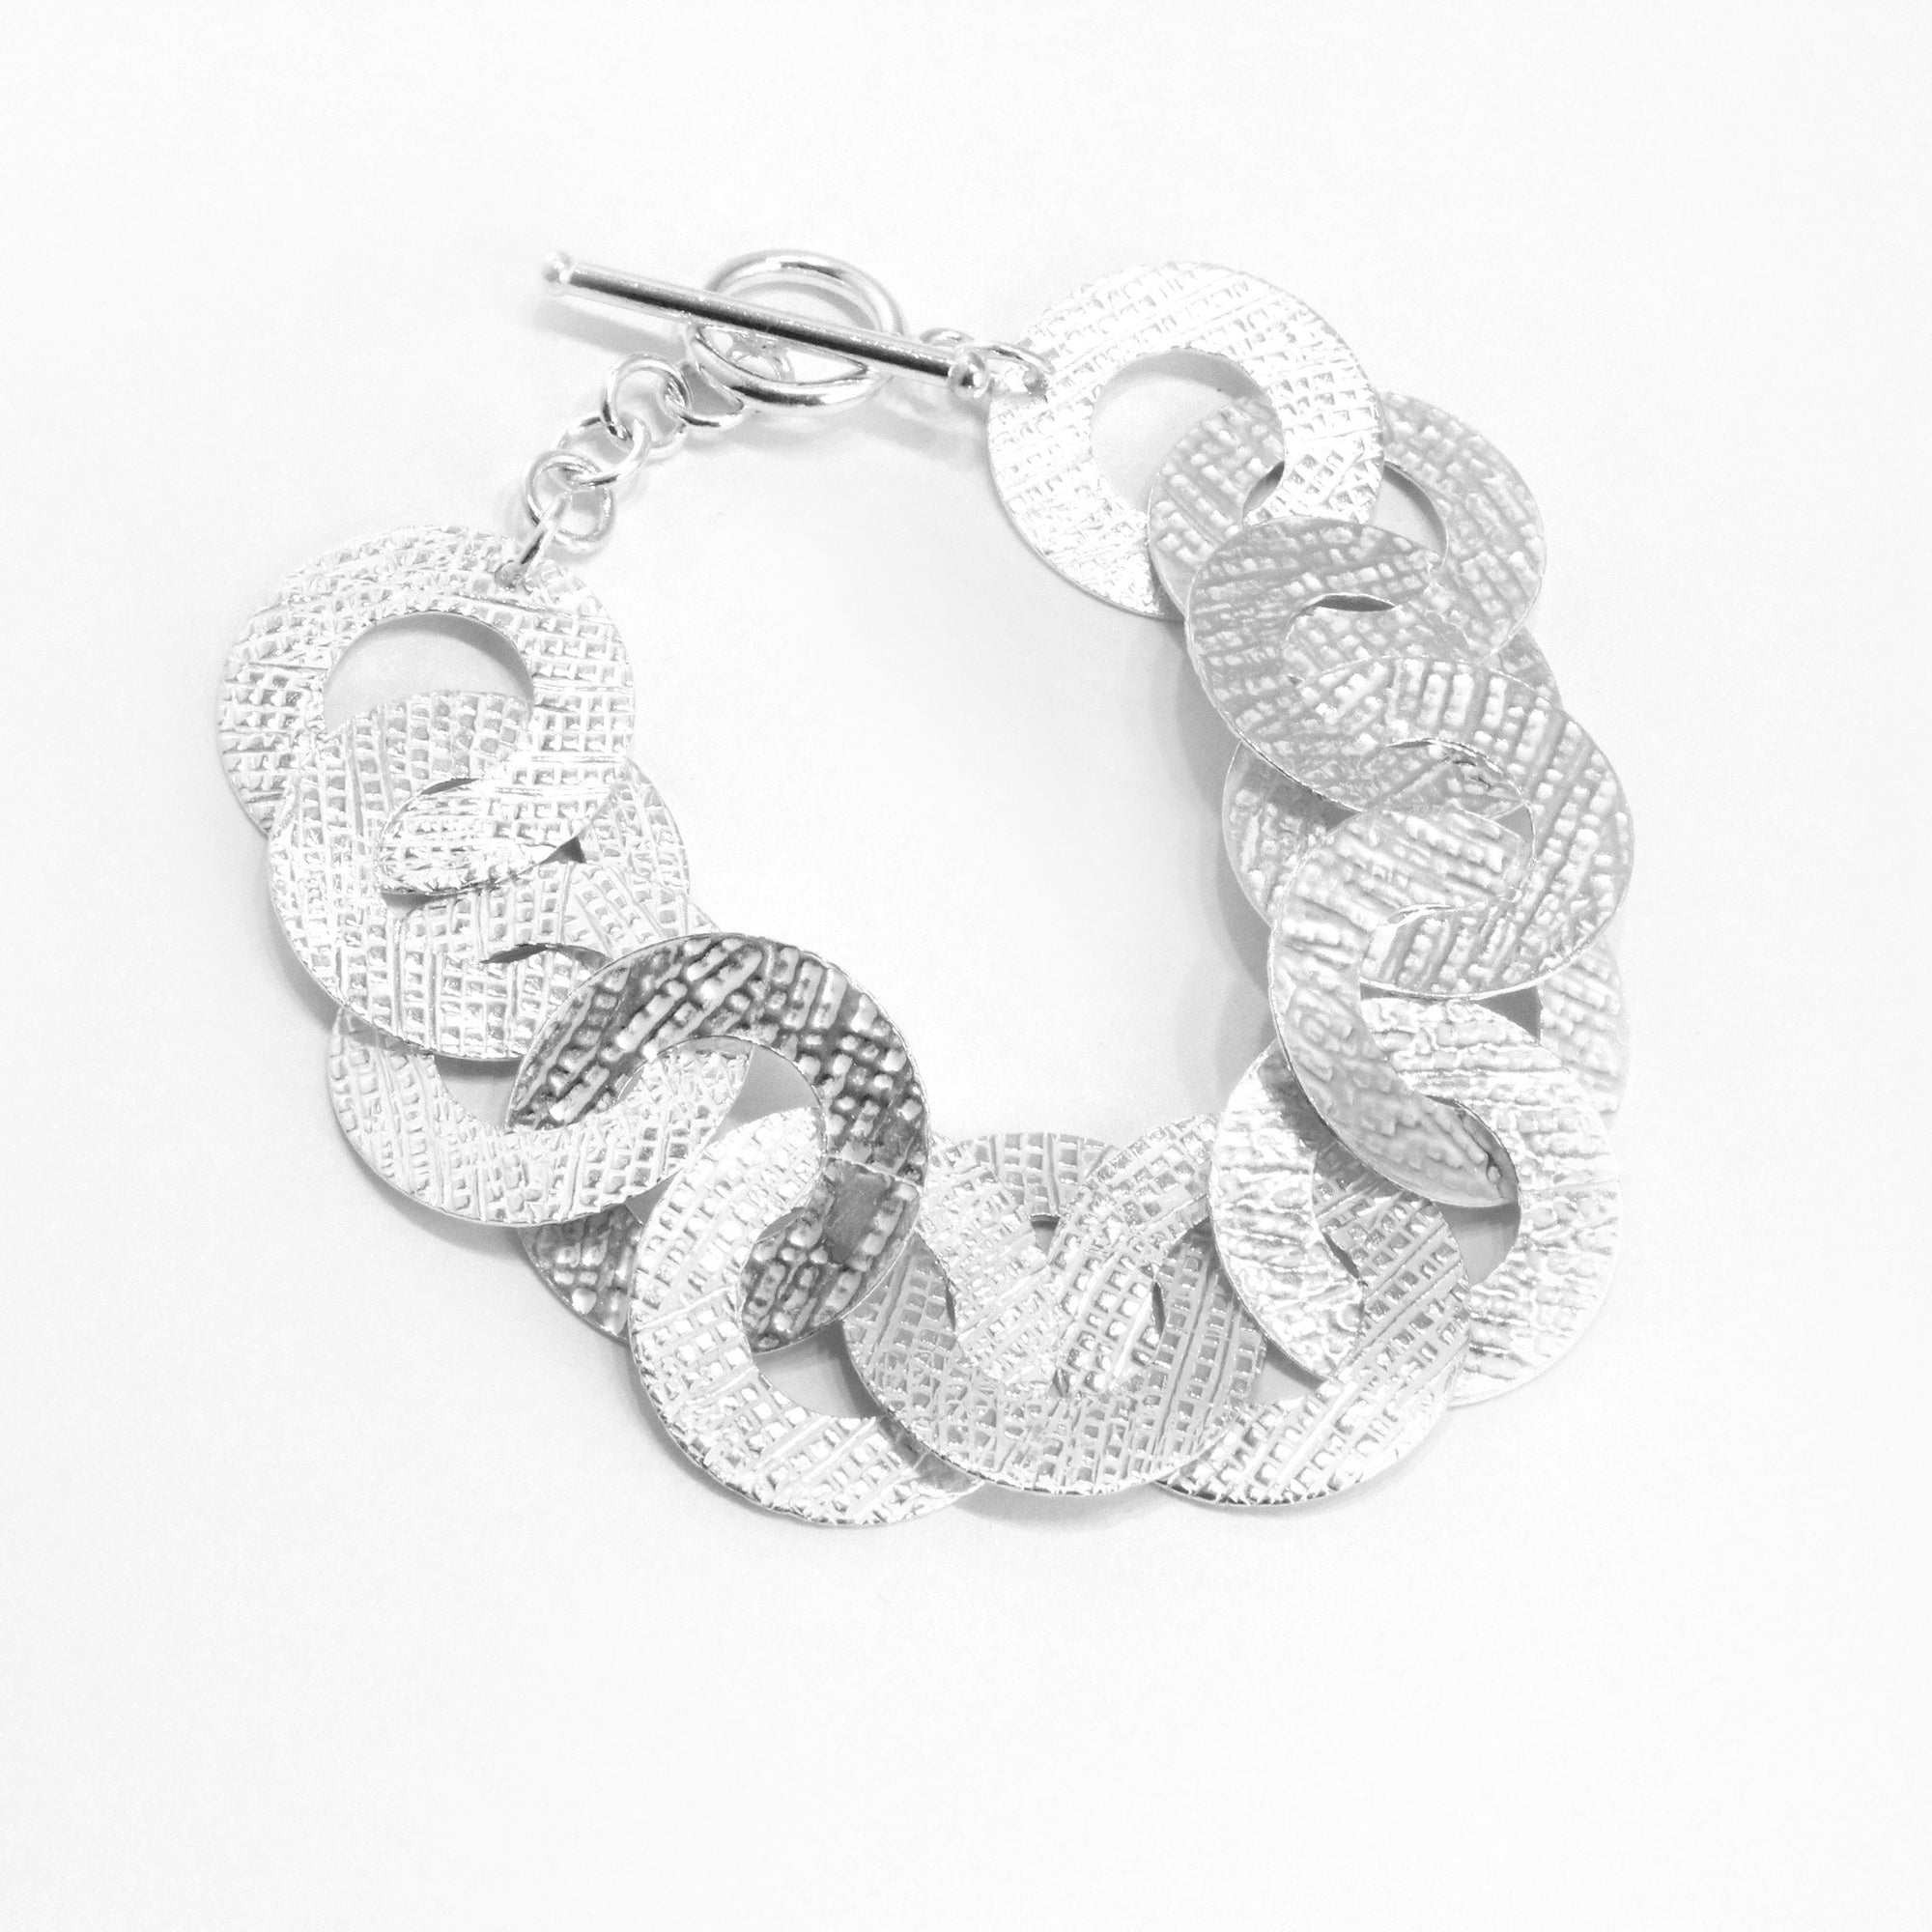 Circles textured Sterling Silver Bracelet - Qinti - The Peruvian Shop